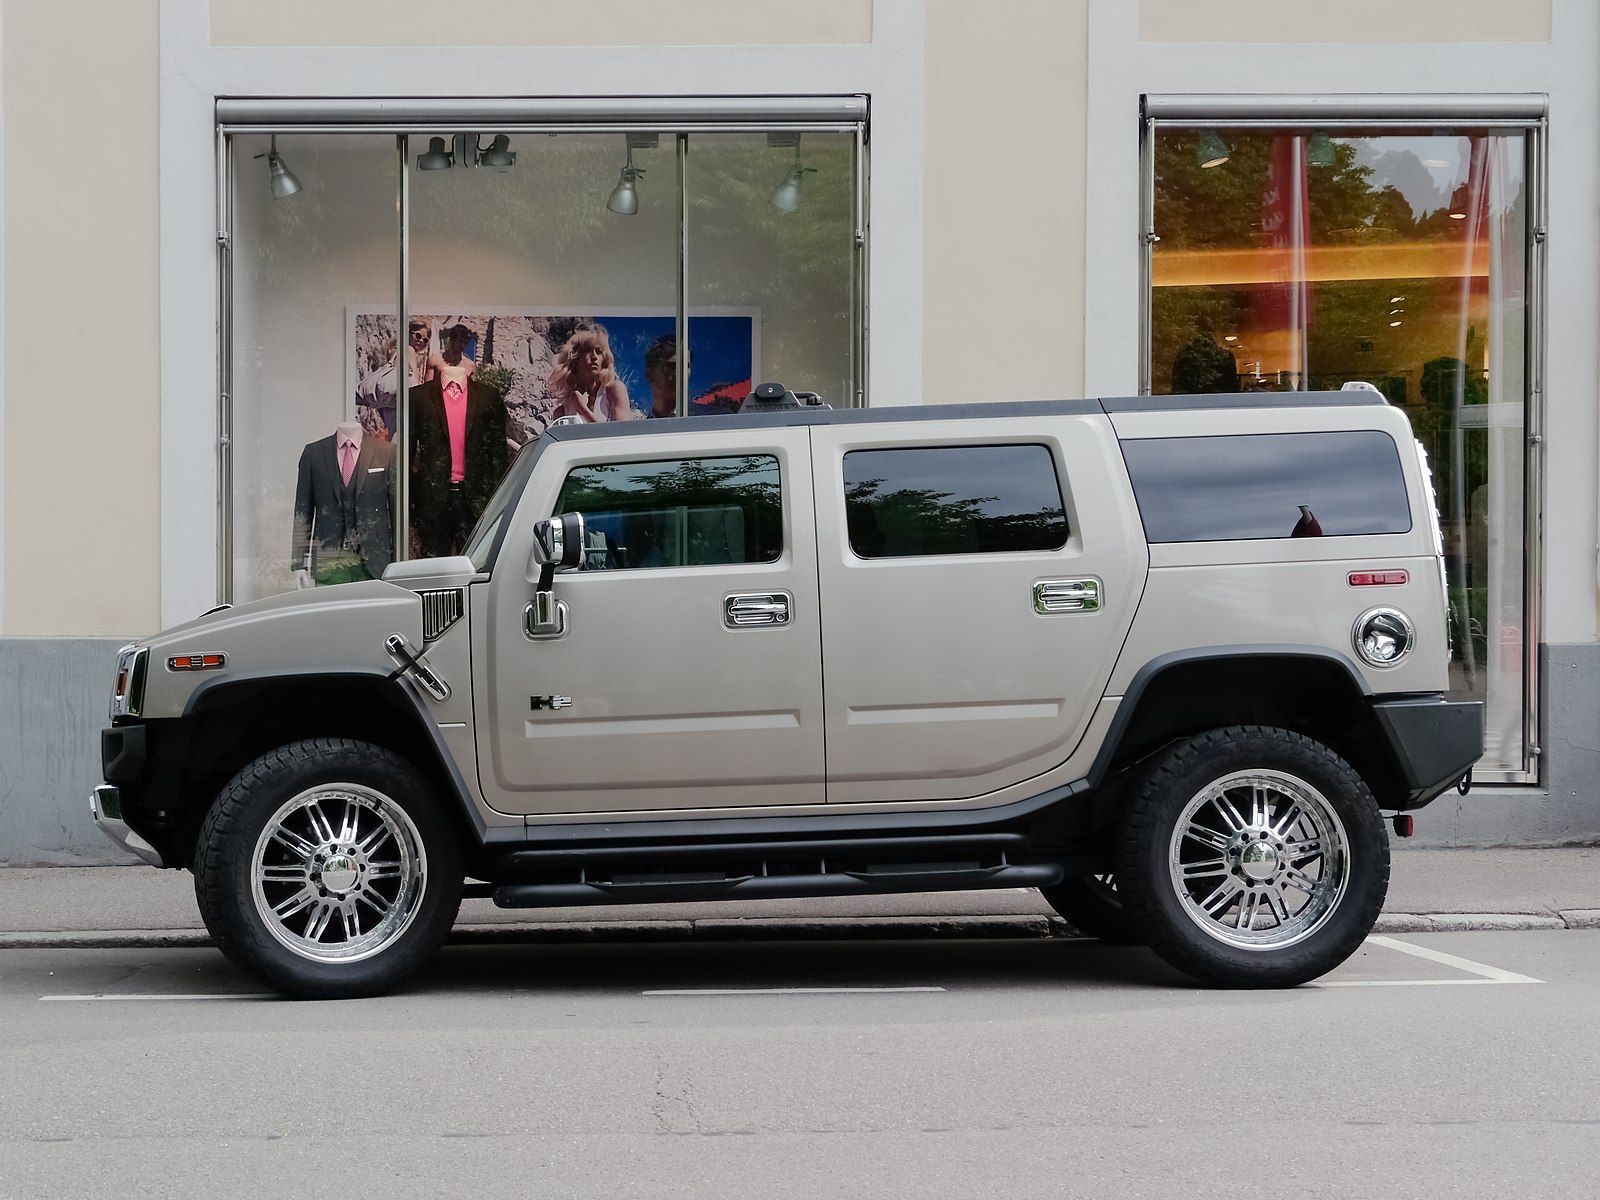 Gm To Release An Electric Hummer Pickup Per Report In 2020 With